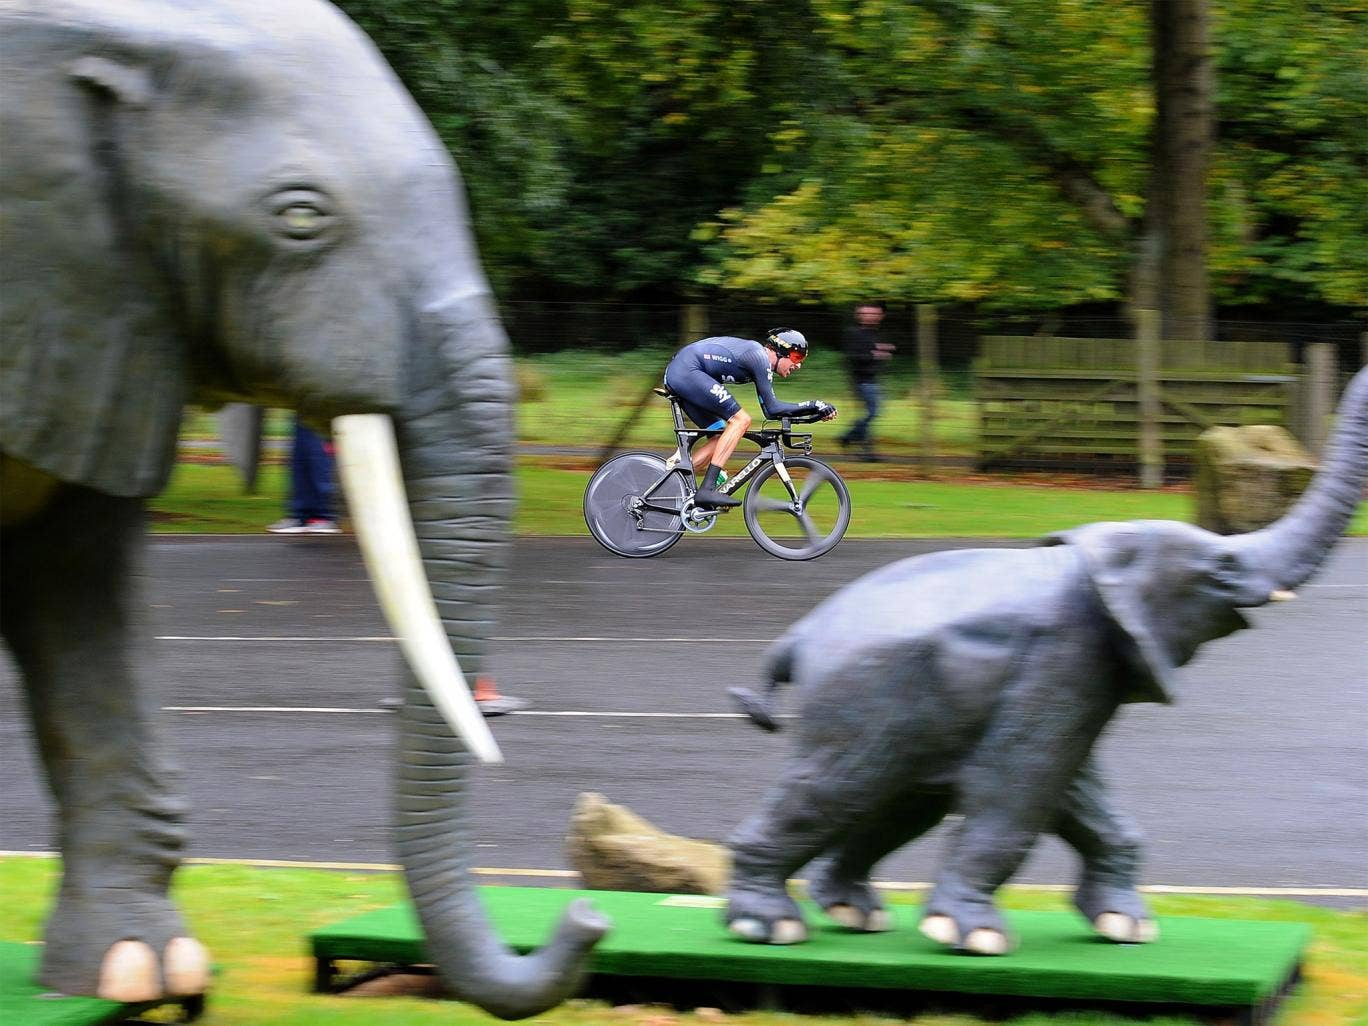 Bradley Wiggins enters Knowsley Safari Park on his way to winning the time trial